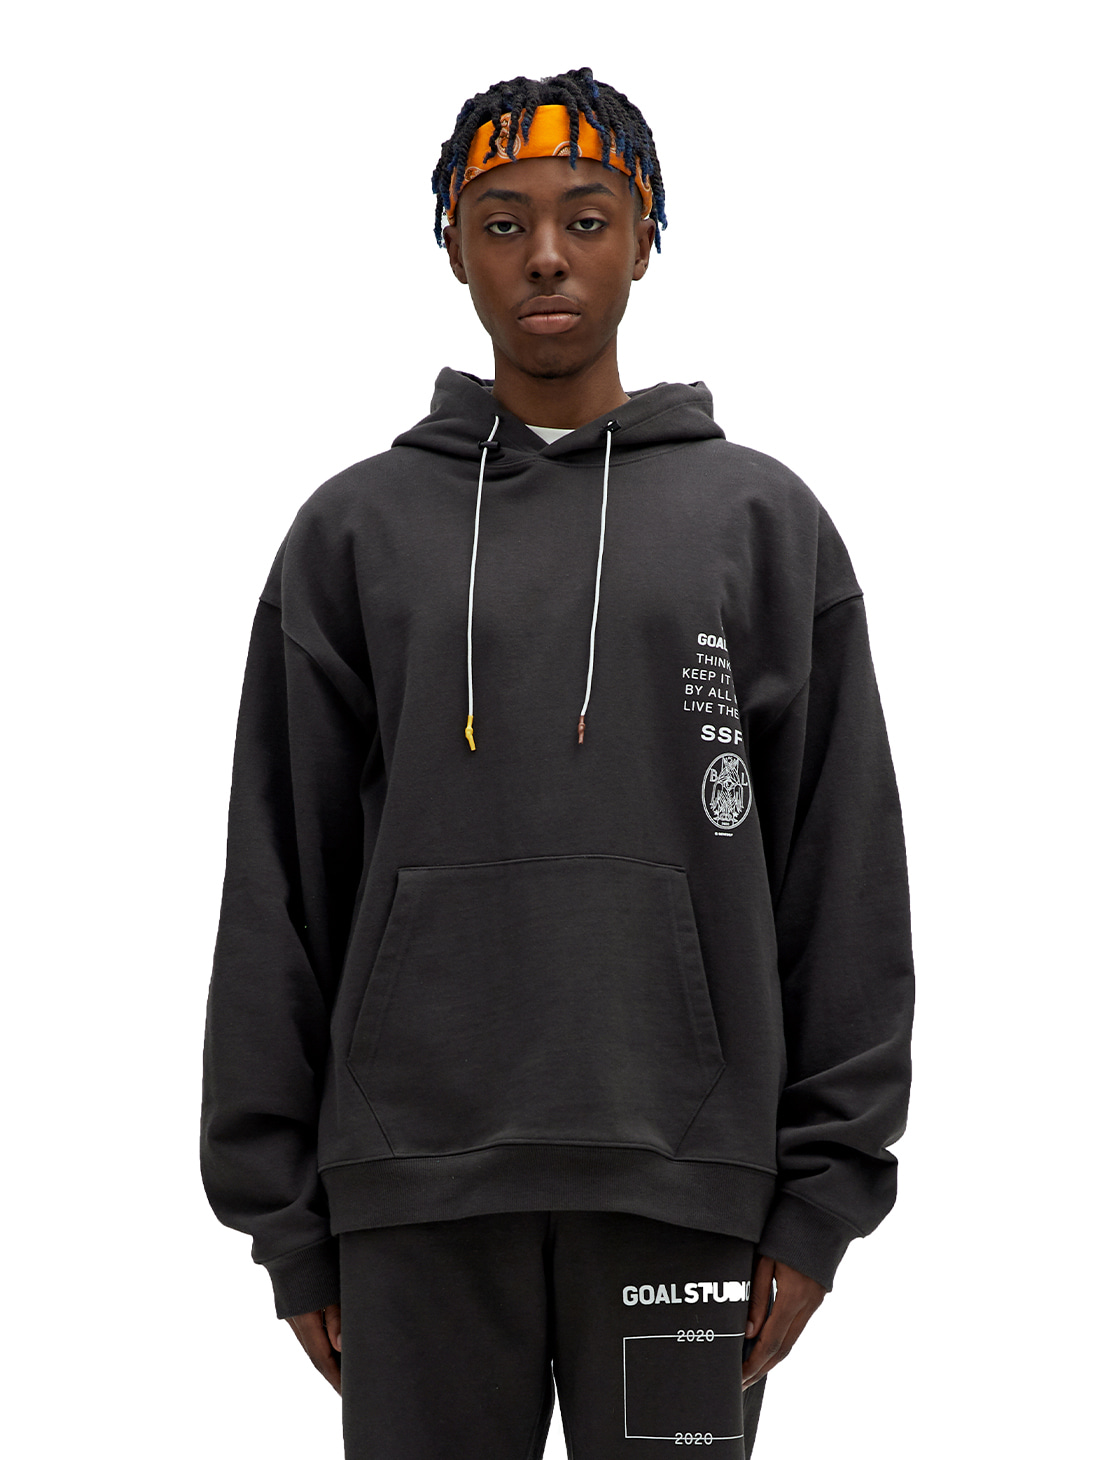 SSFC JERSEY HOODED SWEATSHIRT - CHARCOAL